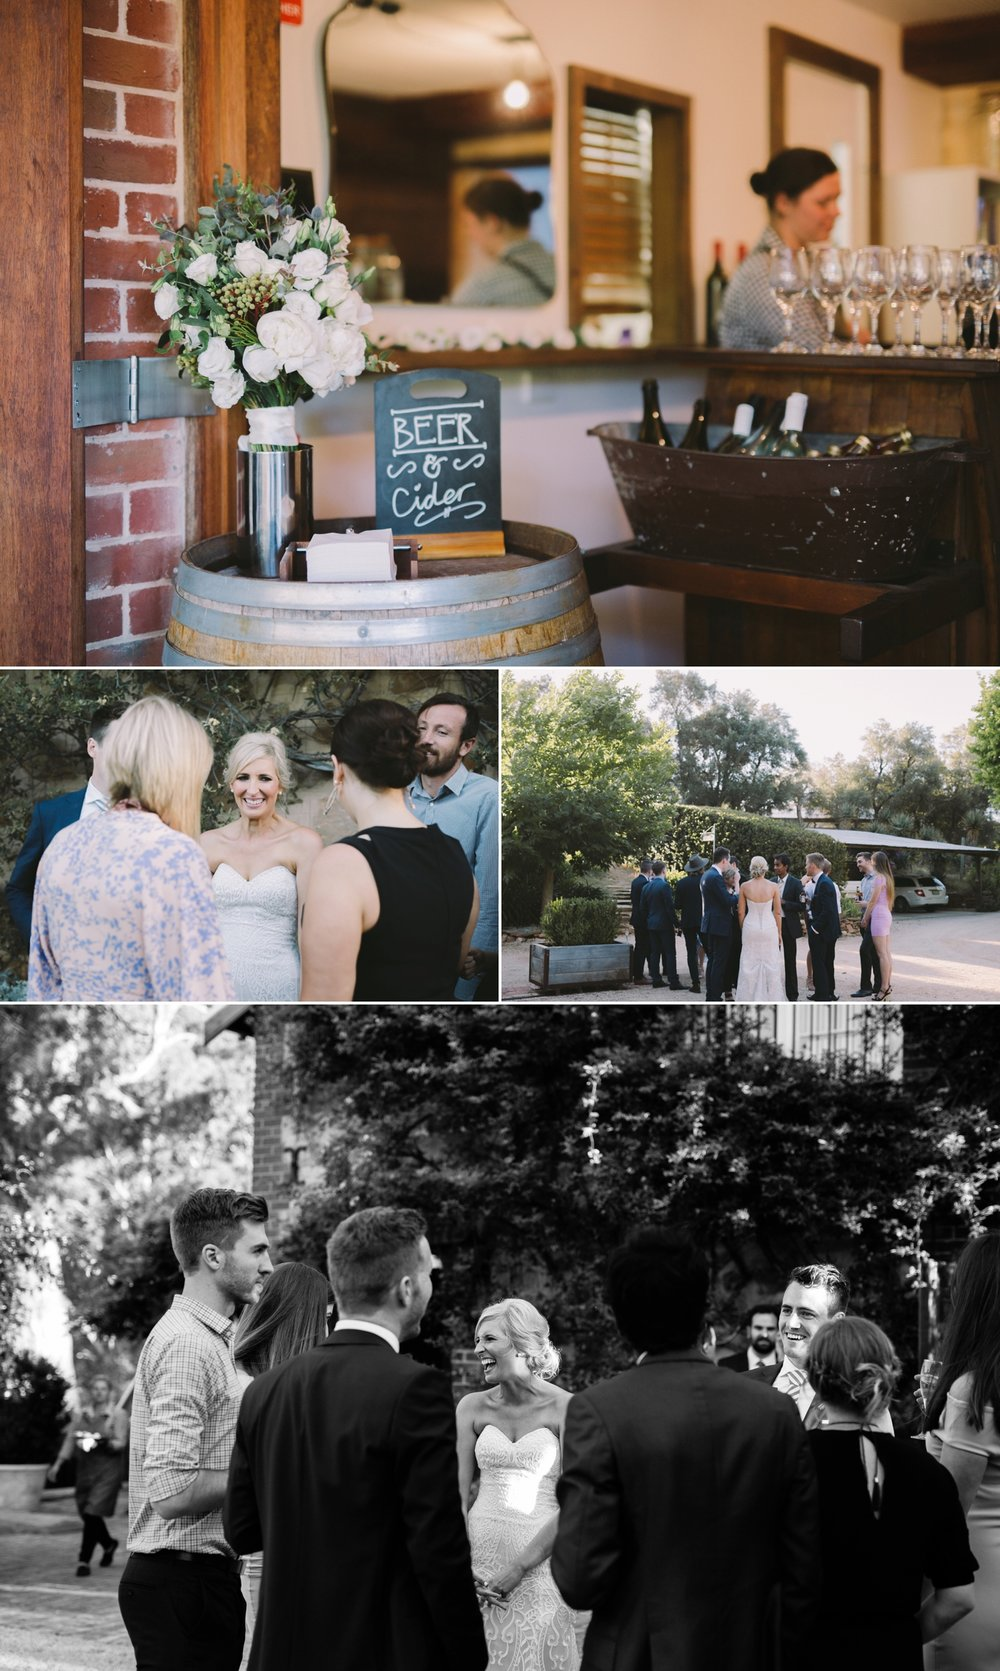 Lauren & Max - Marybank Estate Wedding - Natural wedding photographer in Adelaide - www.katherineschultzphotography.com 94